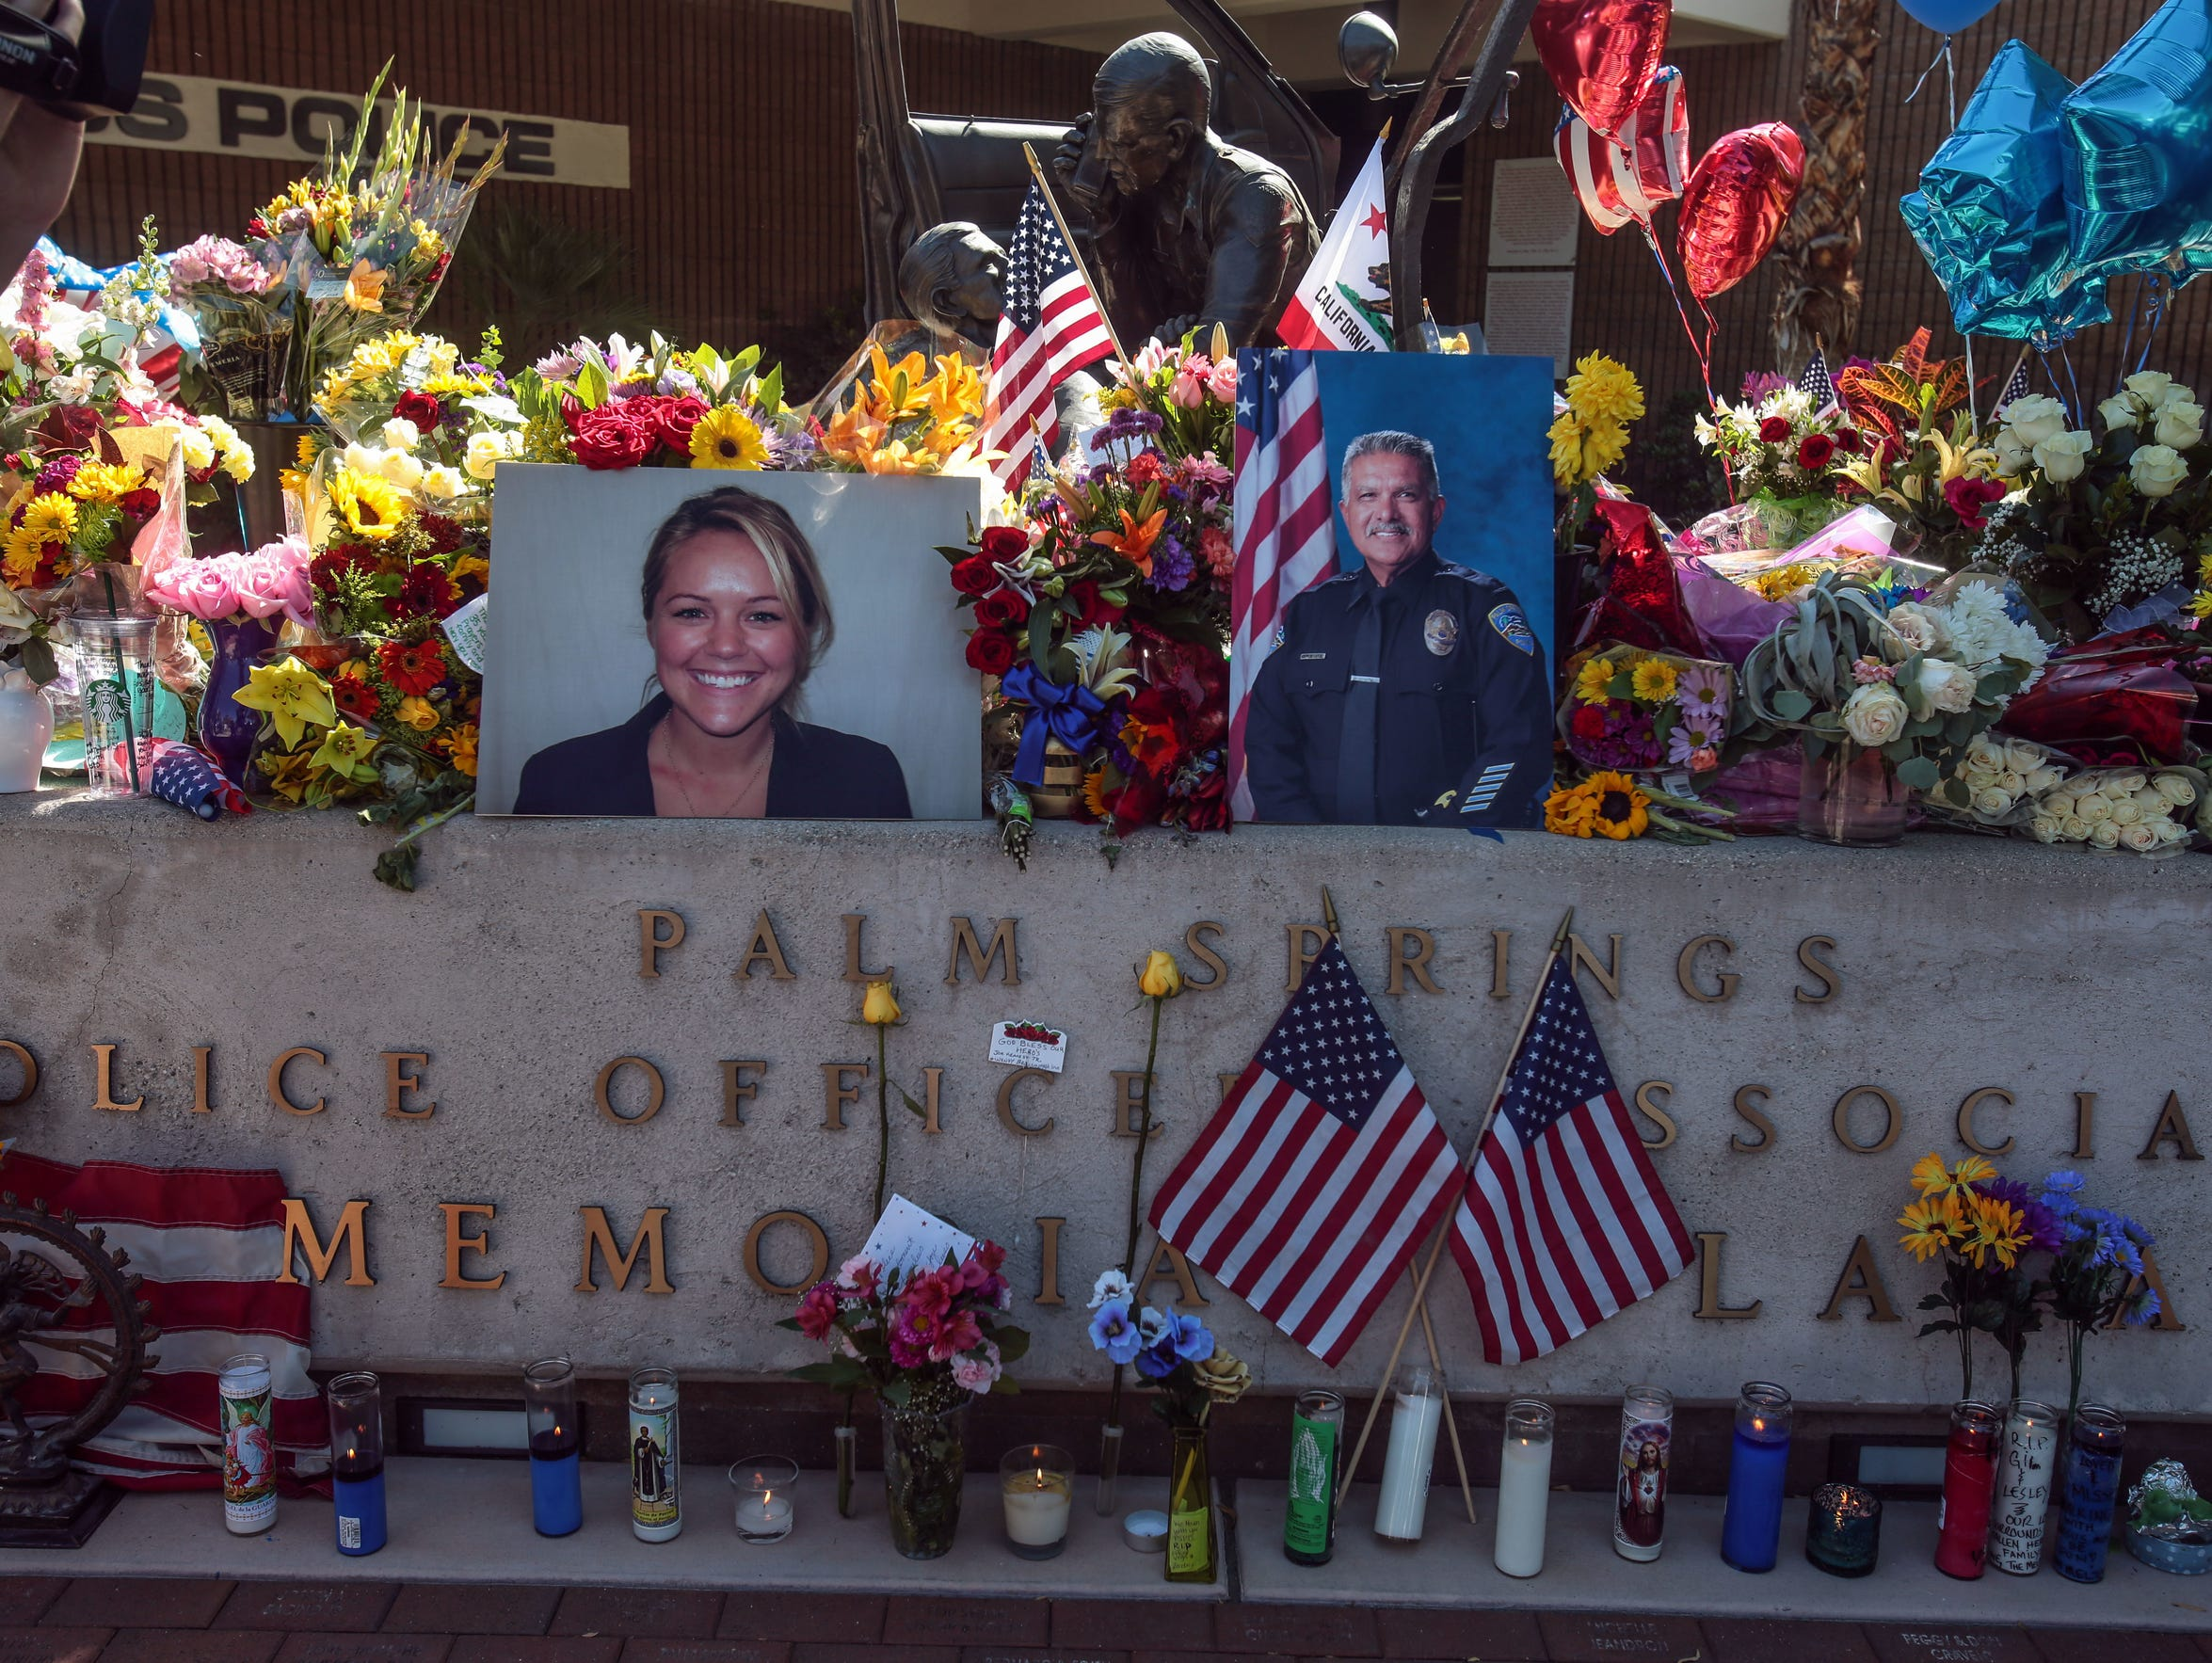 Flowers are piled onto the memorial in front of the